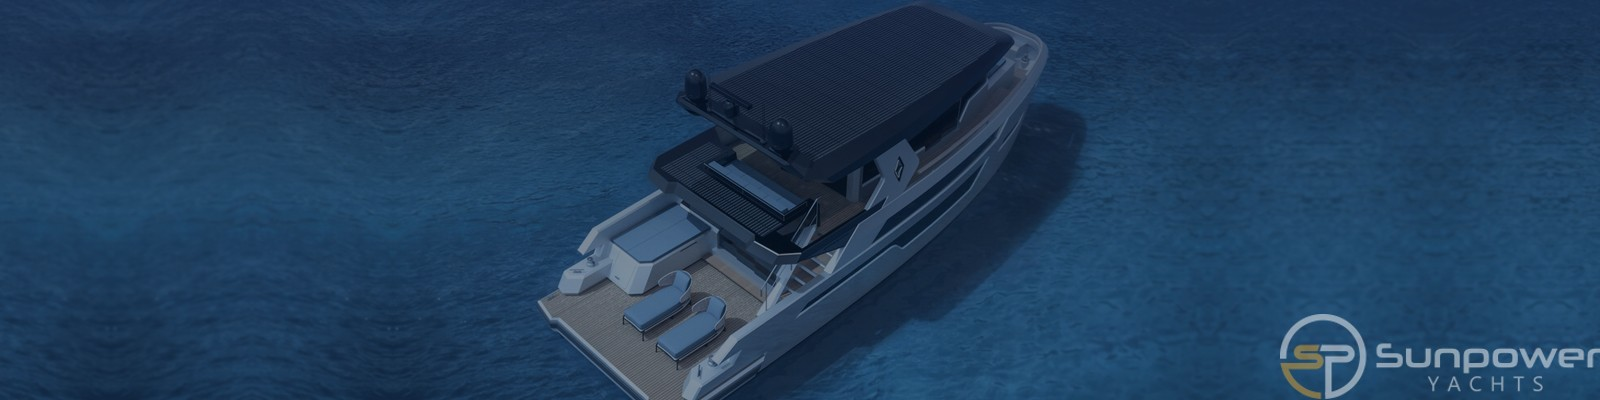 About Sunpower Yachts